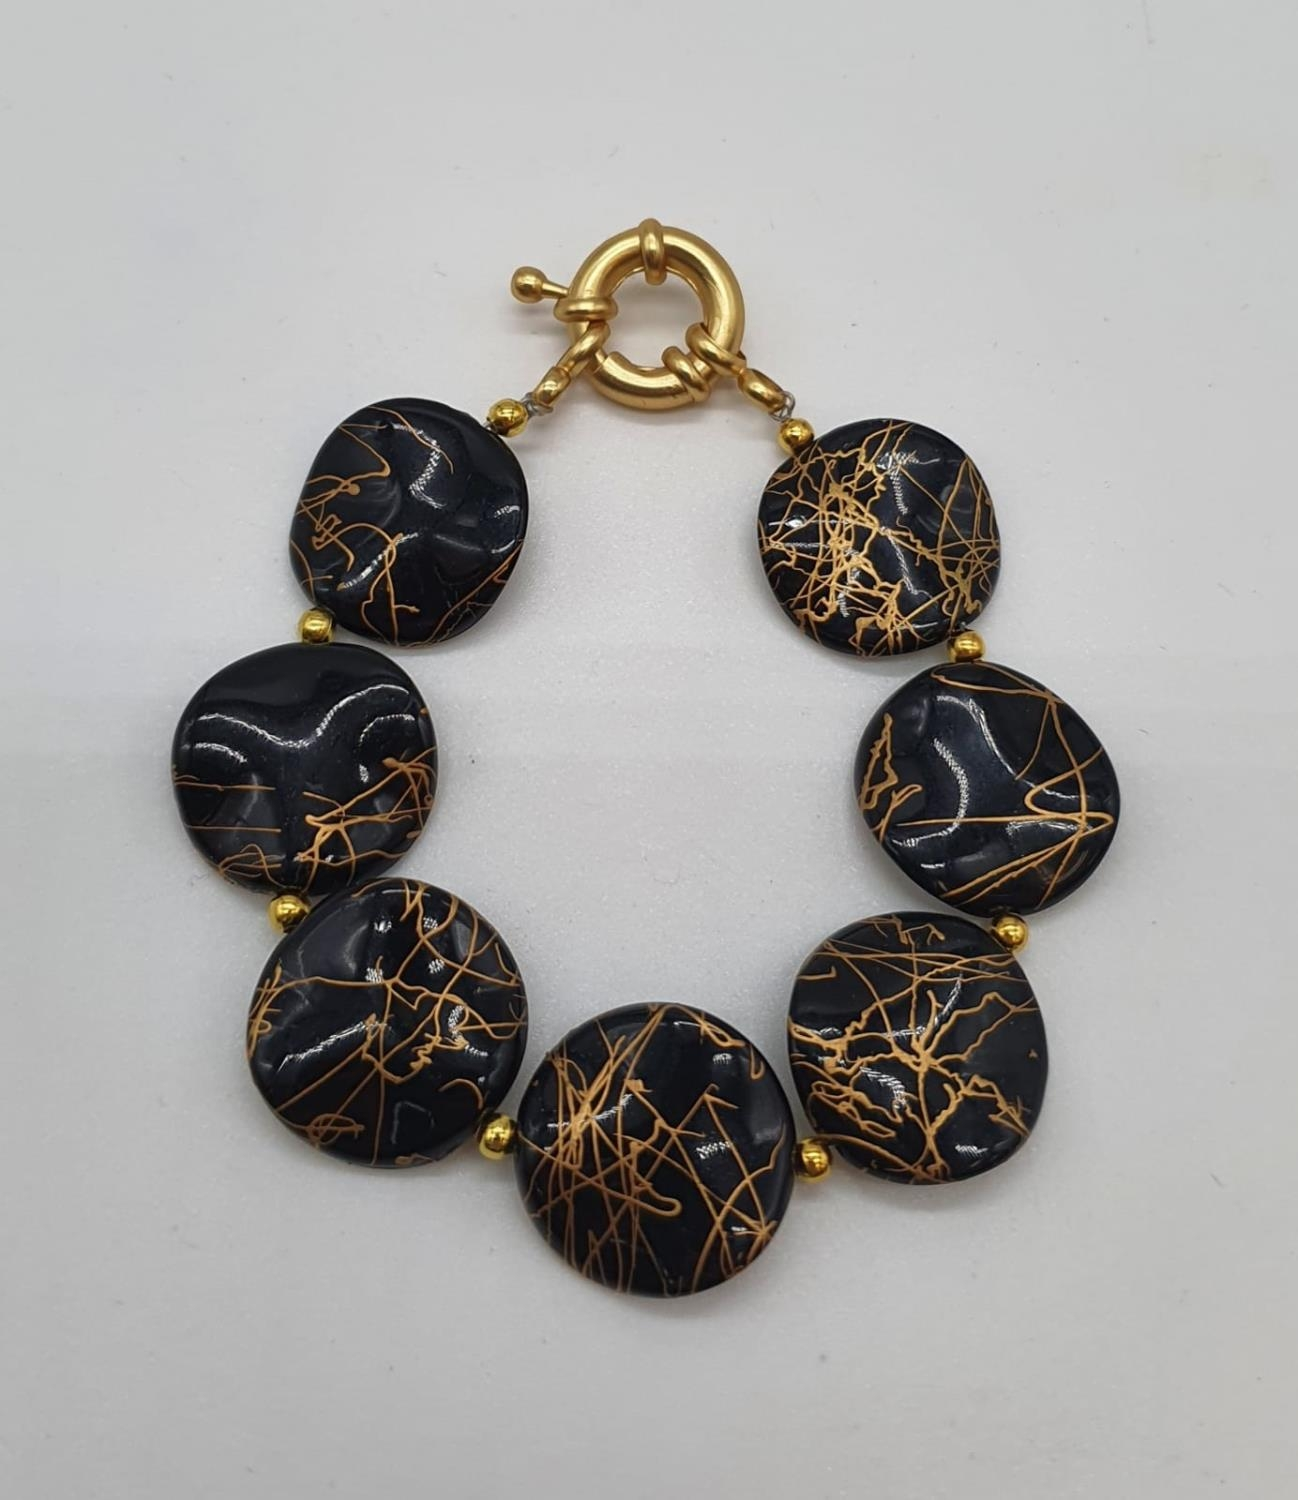 A 60?s black and gold coloured necklace, bracelet and earrings set in a presentation box. Necklace - Image 3 of 5